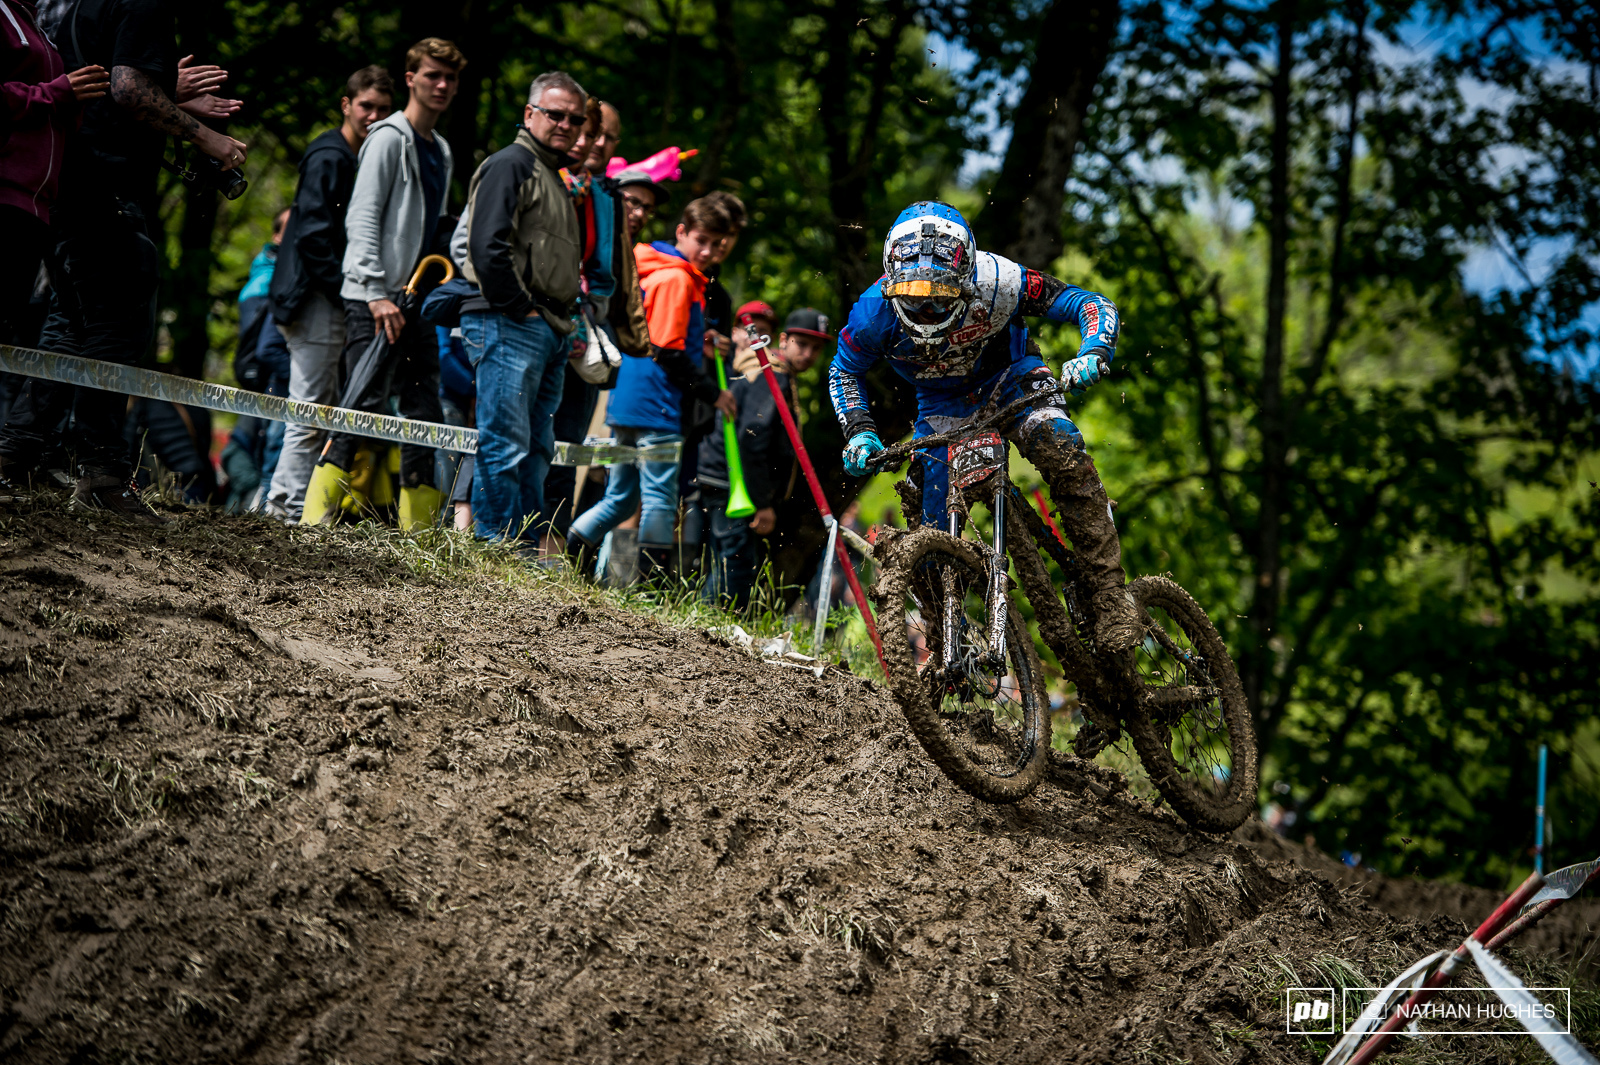 Alex Marin hovering above the slop with overloaded tyre treads.